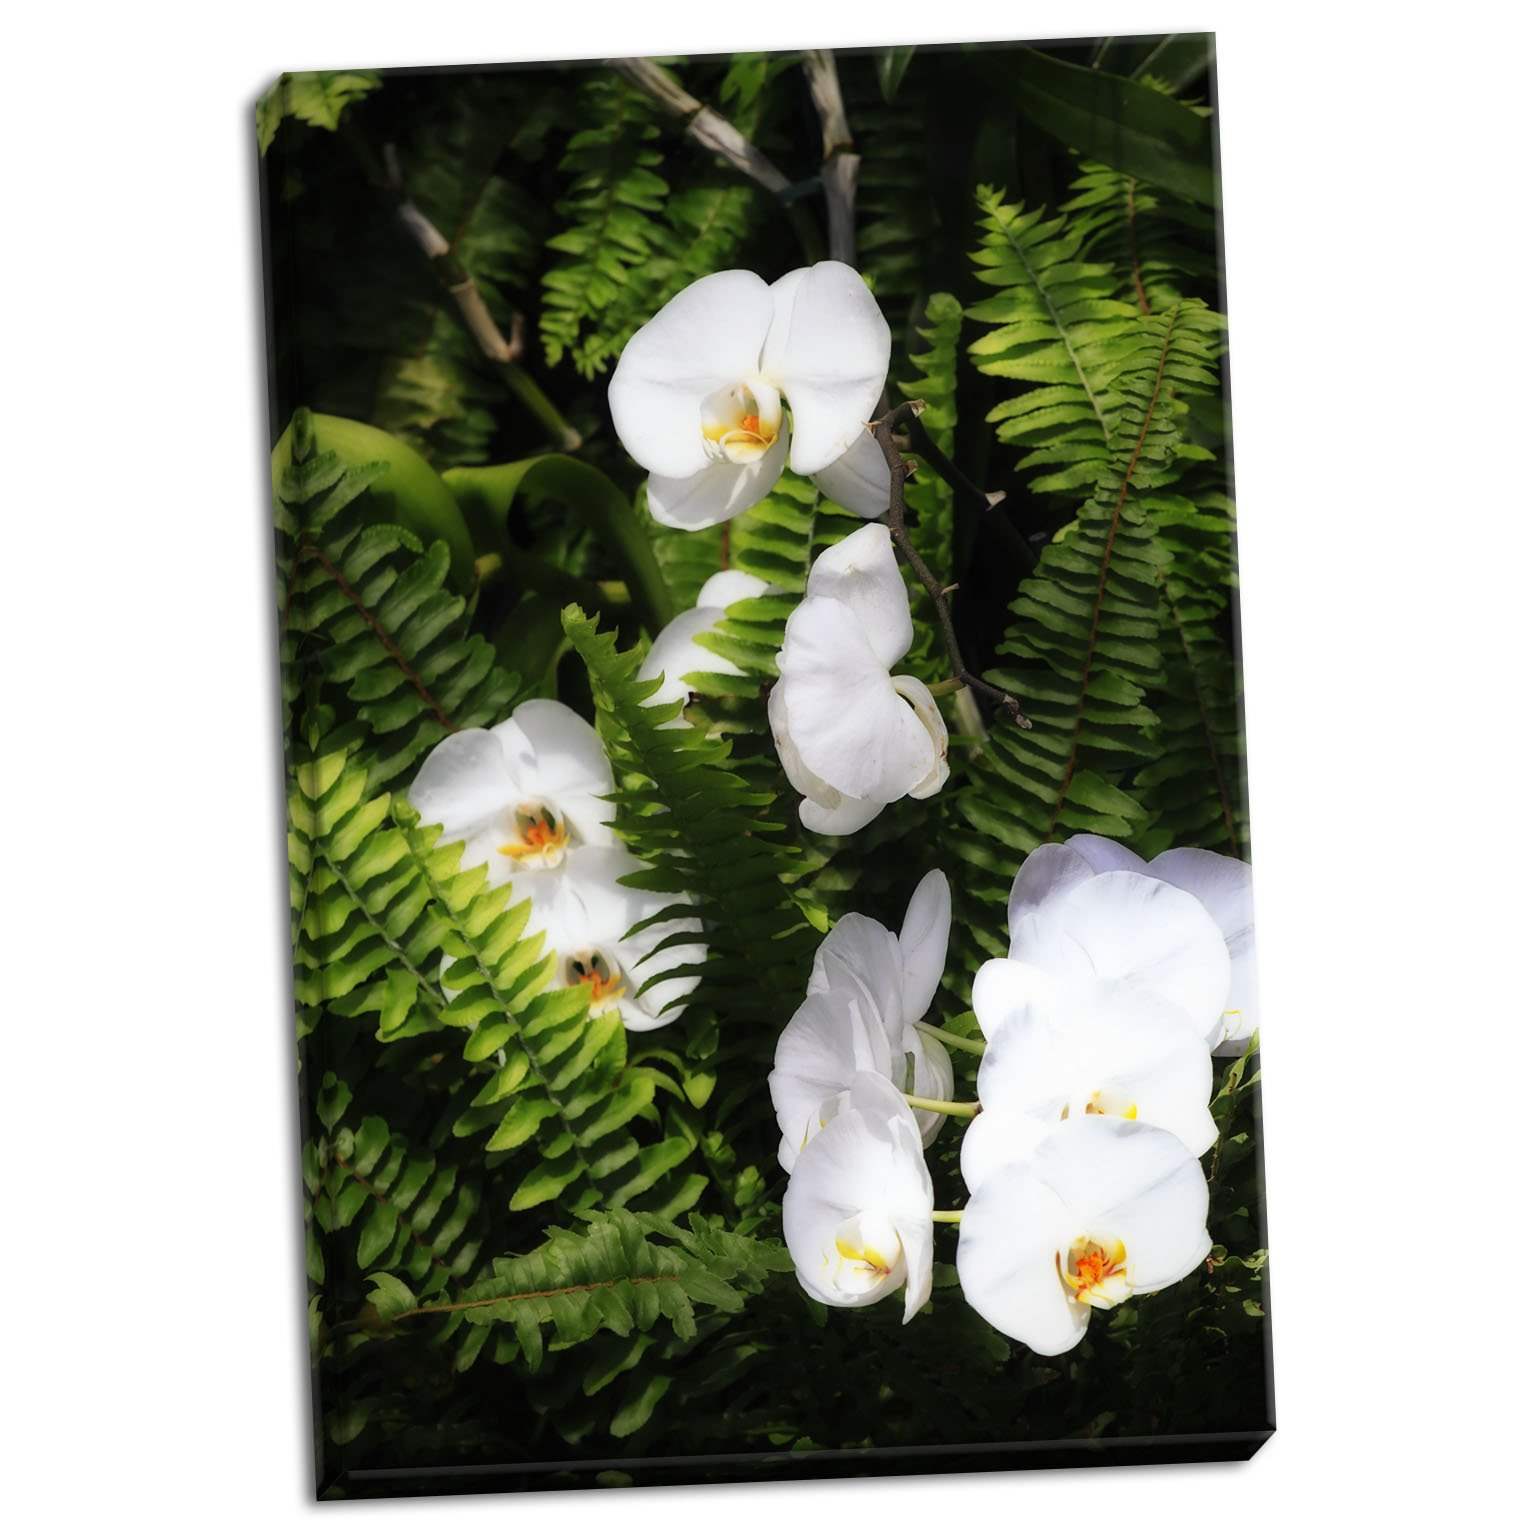 Orchids & Ferns I, Fine Art Photograph By: Alan Hausenflock; One 24x36in Hand-Stretched Canvas